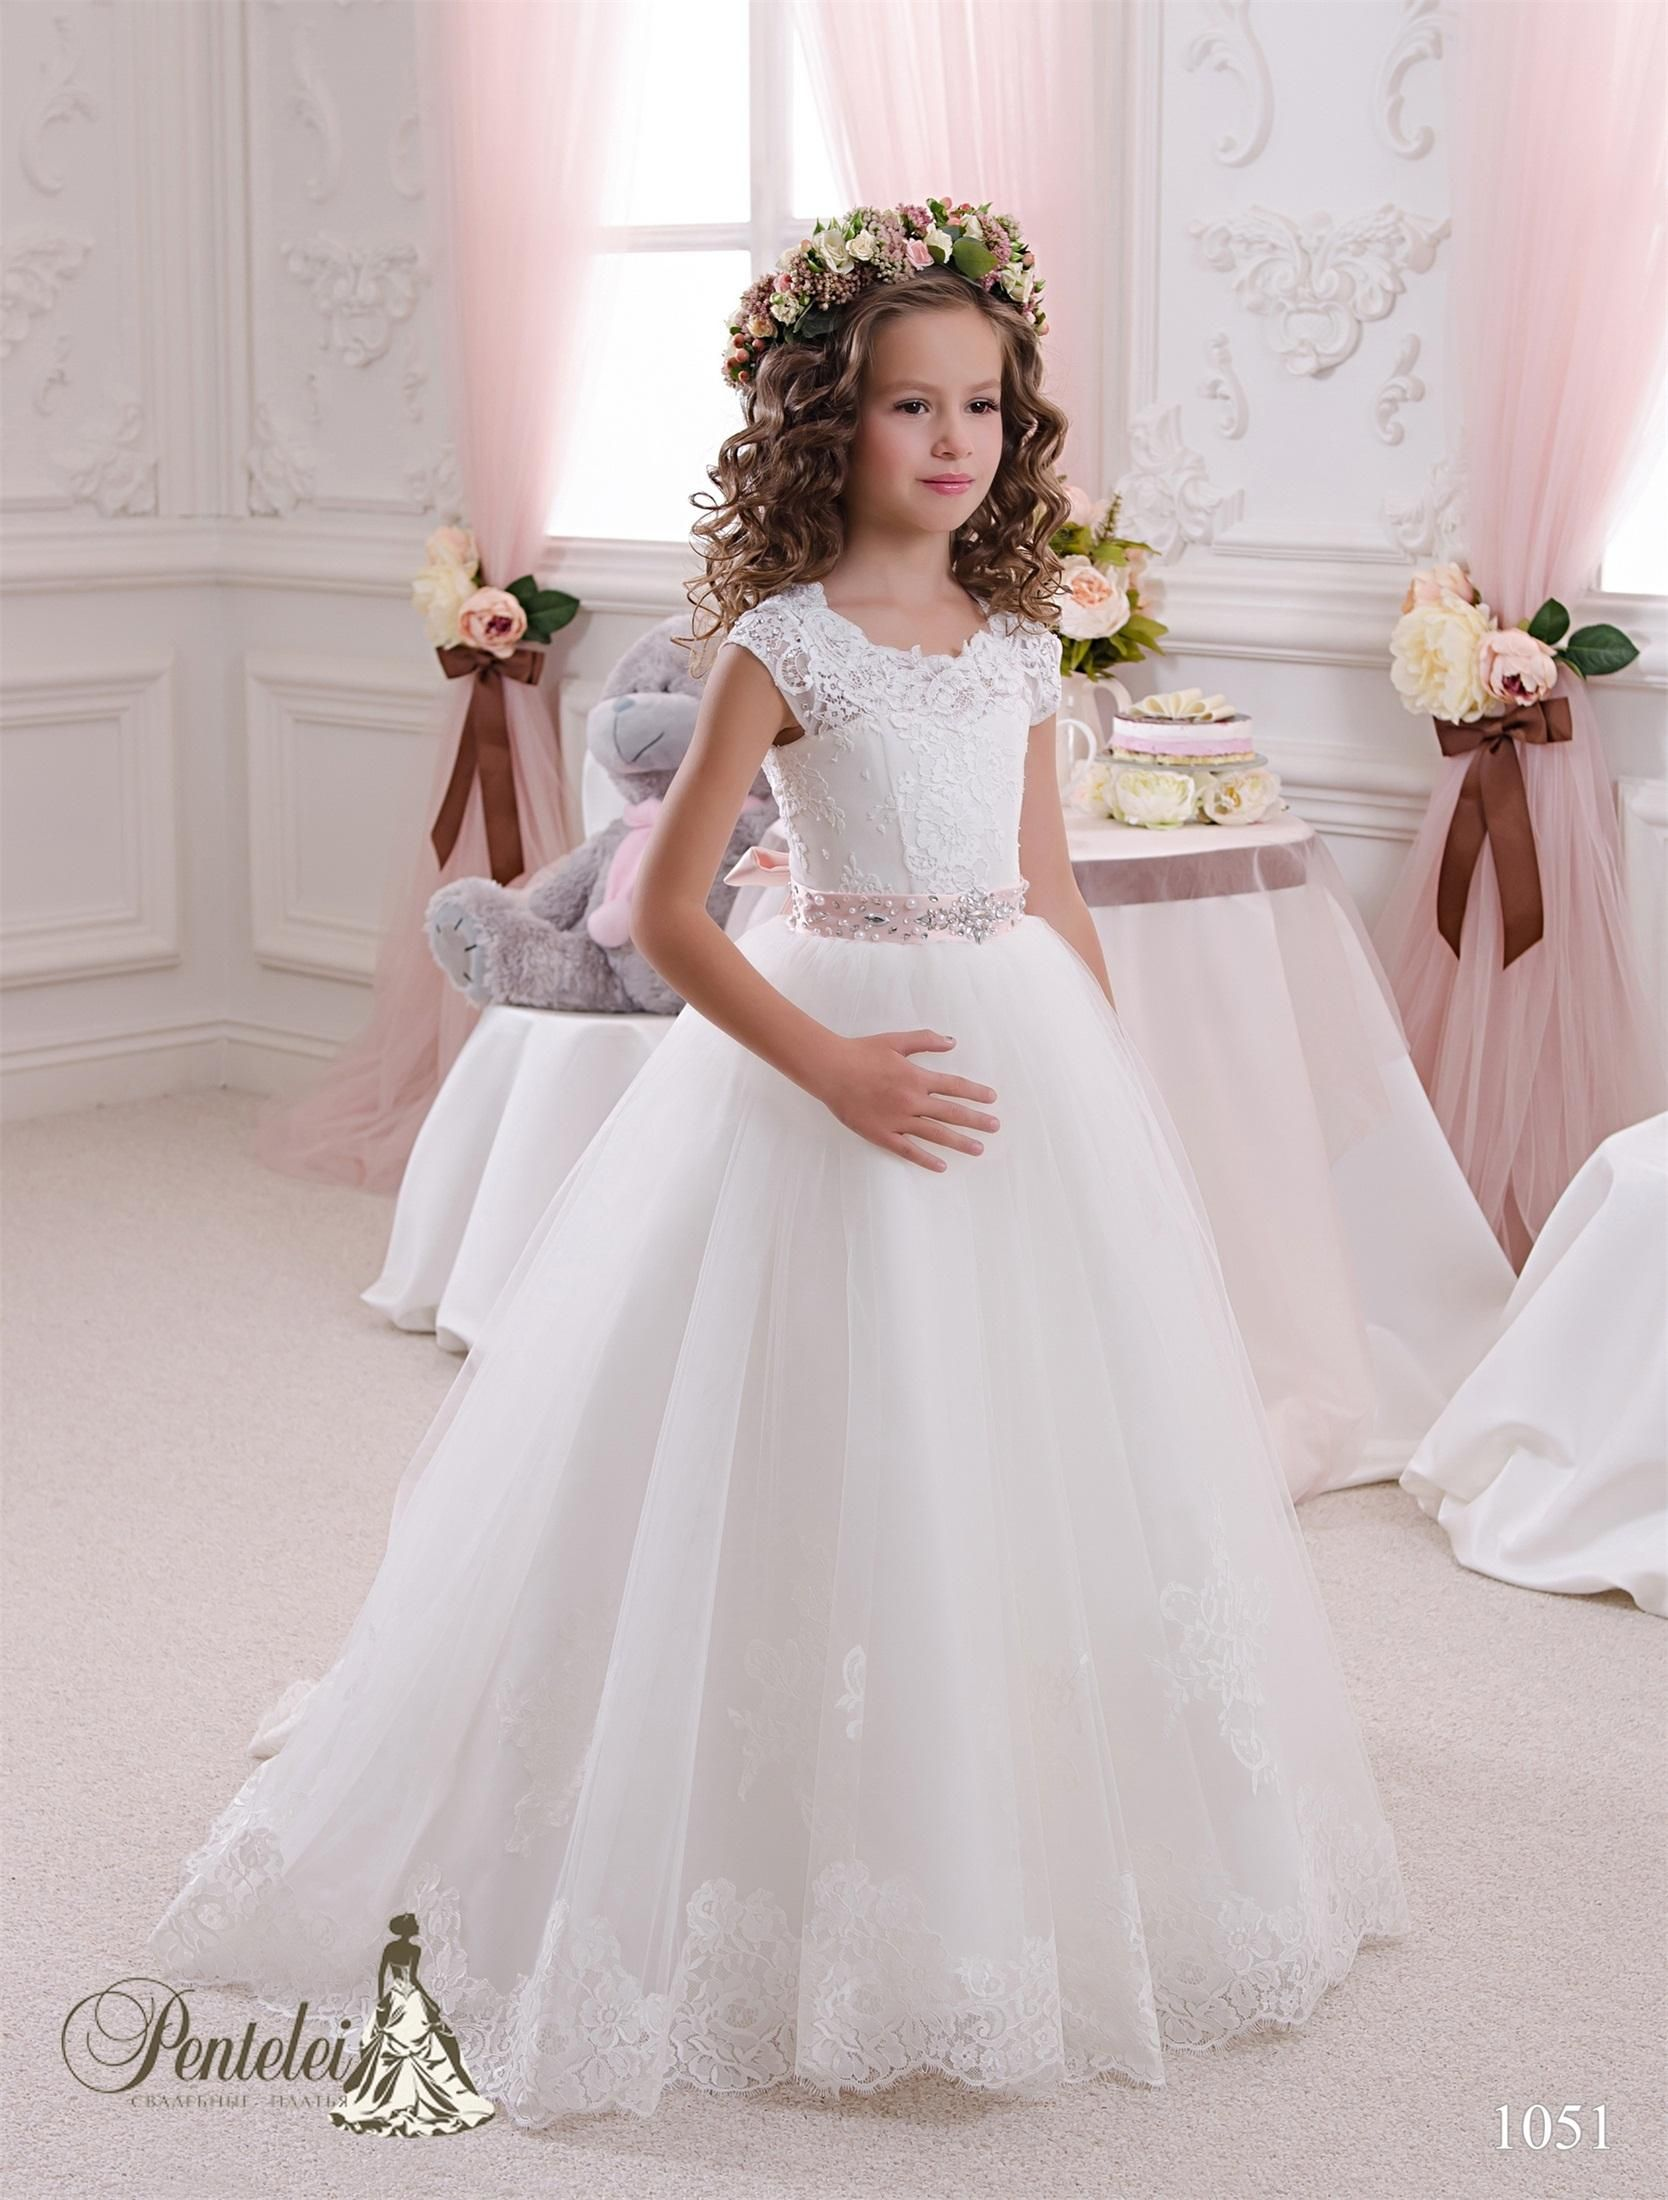 2016 kids wedding dresses with cap sleeves jewel neck ForDresses For Girls Wedding